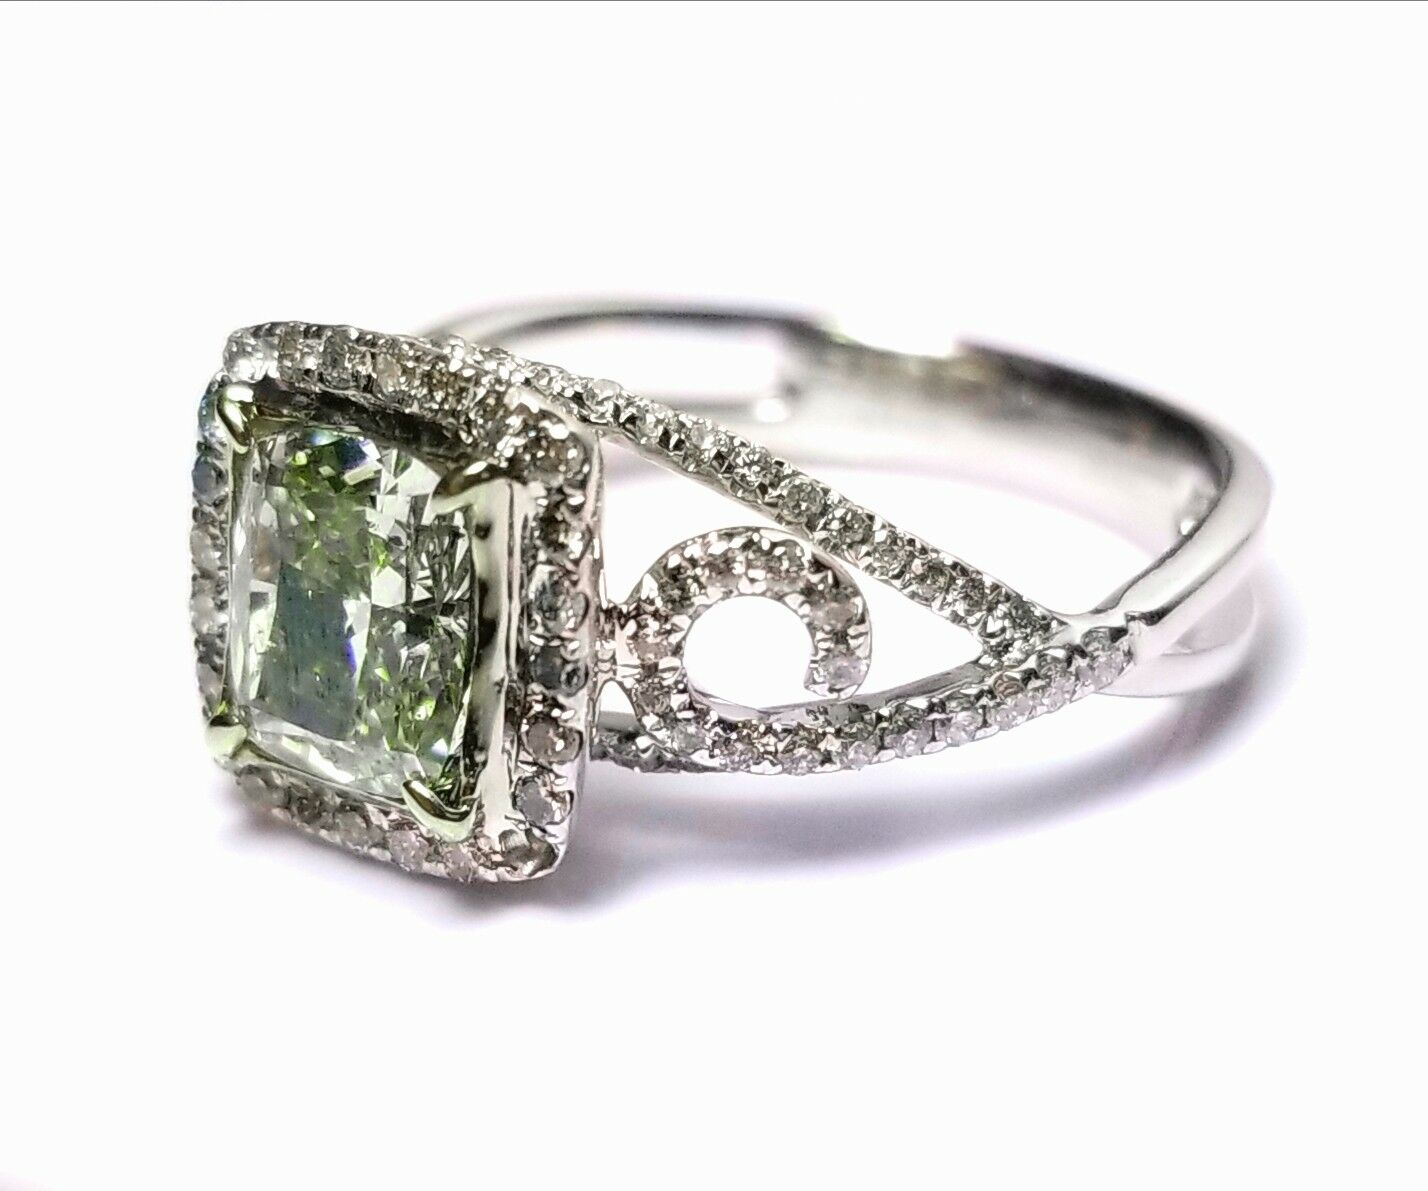 1.73ct Natural Fancy Green Diamond Engagement Ring GIA 18K White Gold Cushion 1